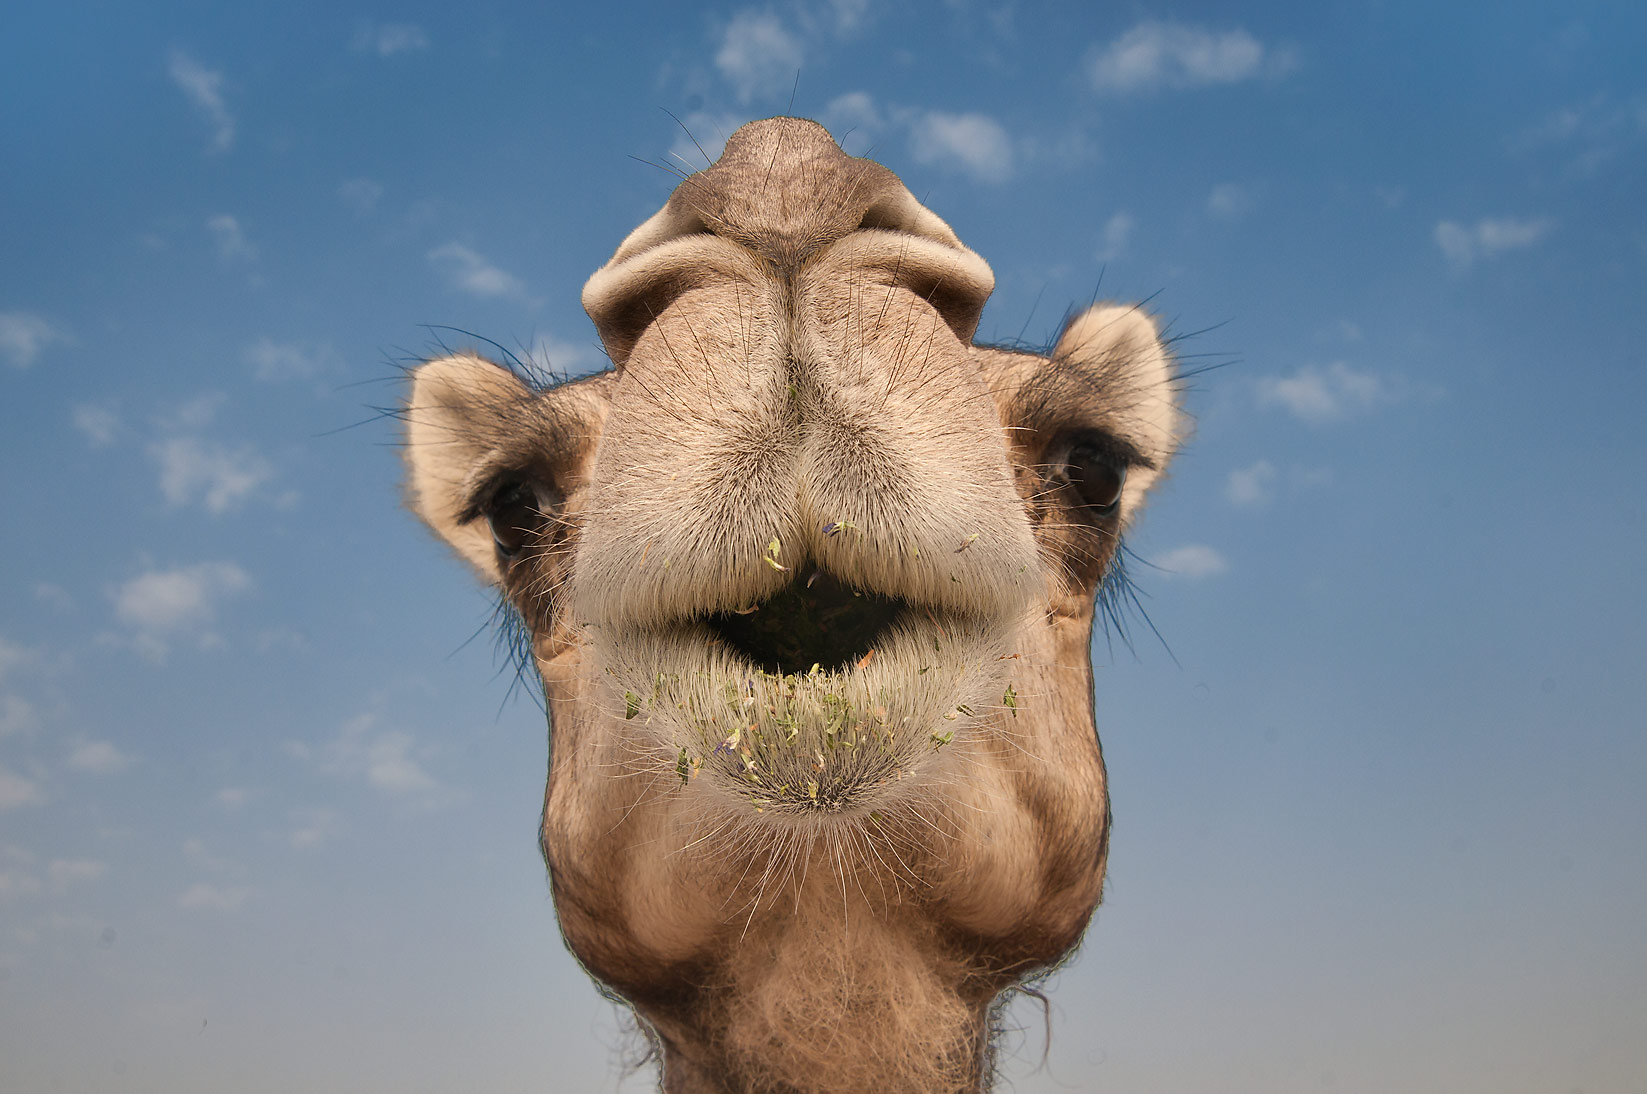 Slideshow 1020-14: Camel's mouth and double rows of long ...